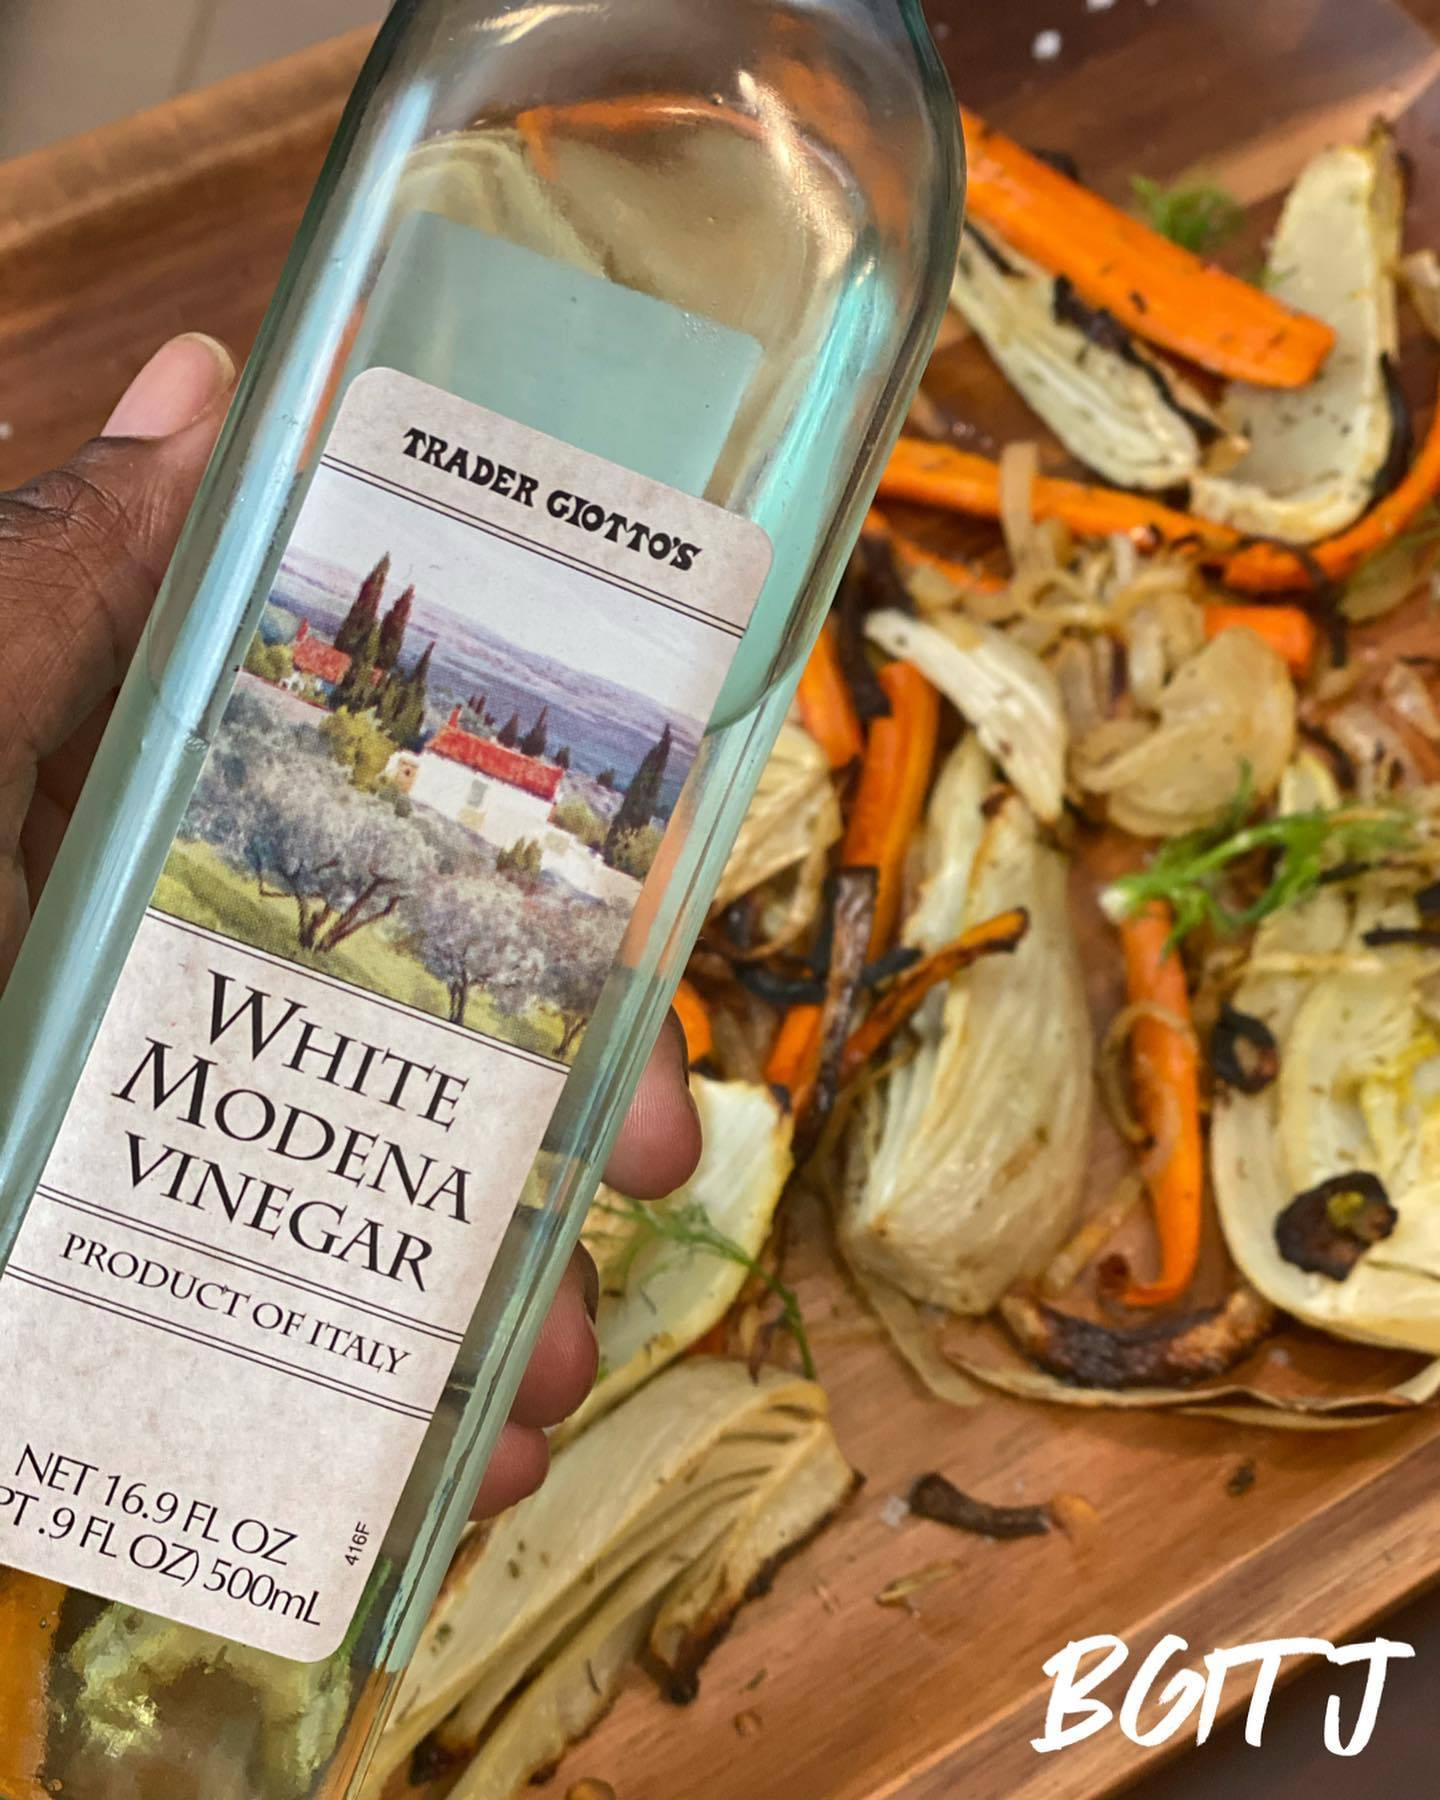 Roasted Fennel & Carrots with White Balsamic Vinaigrette Dressing from @blackgirlsintraderjoes